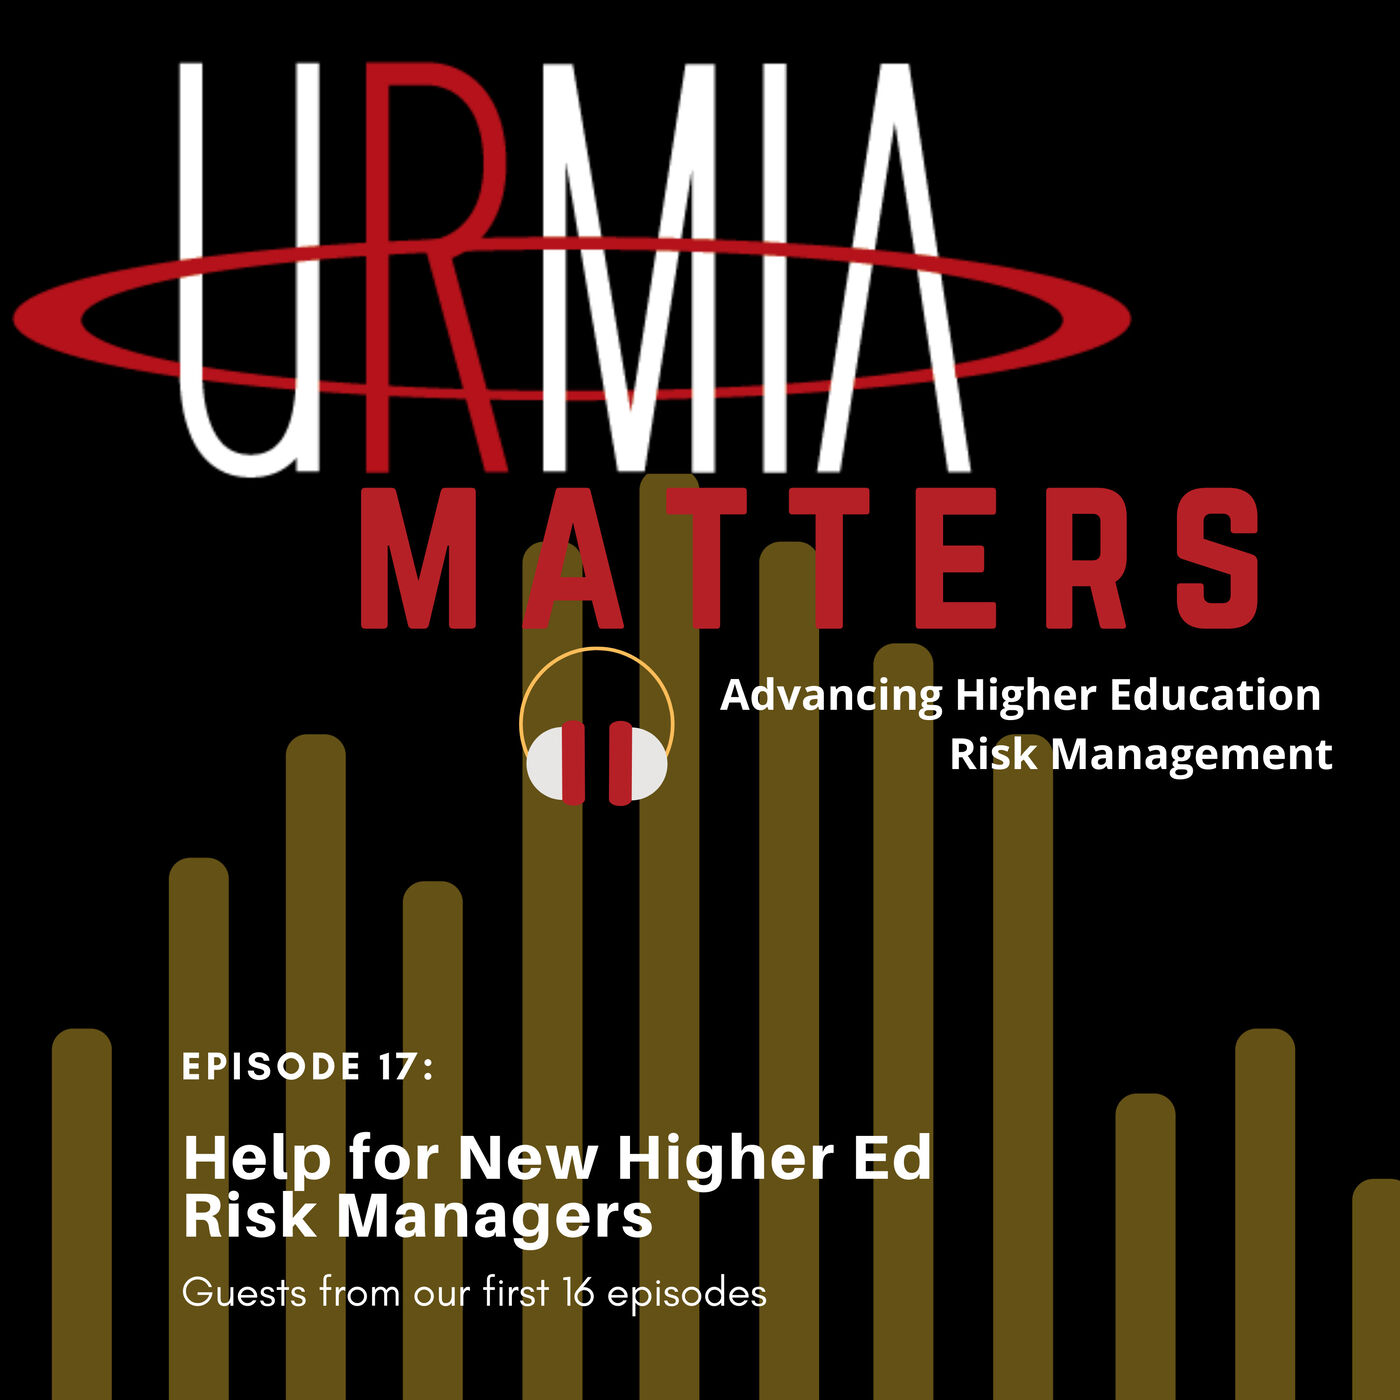 Episode 17: Help for New Higher Ed Risk Managers